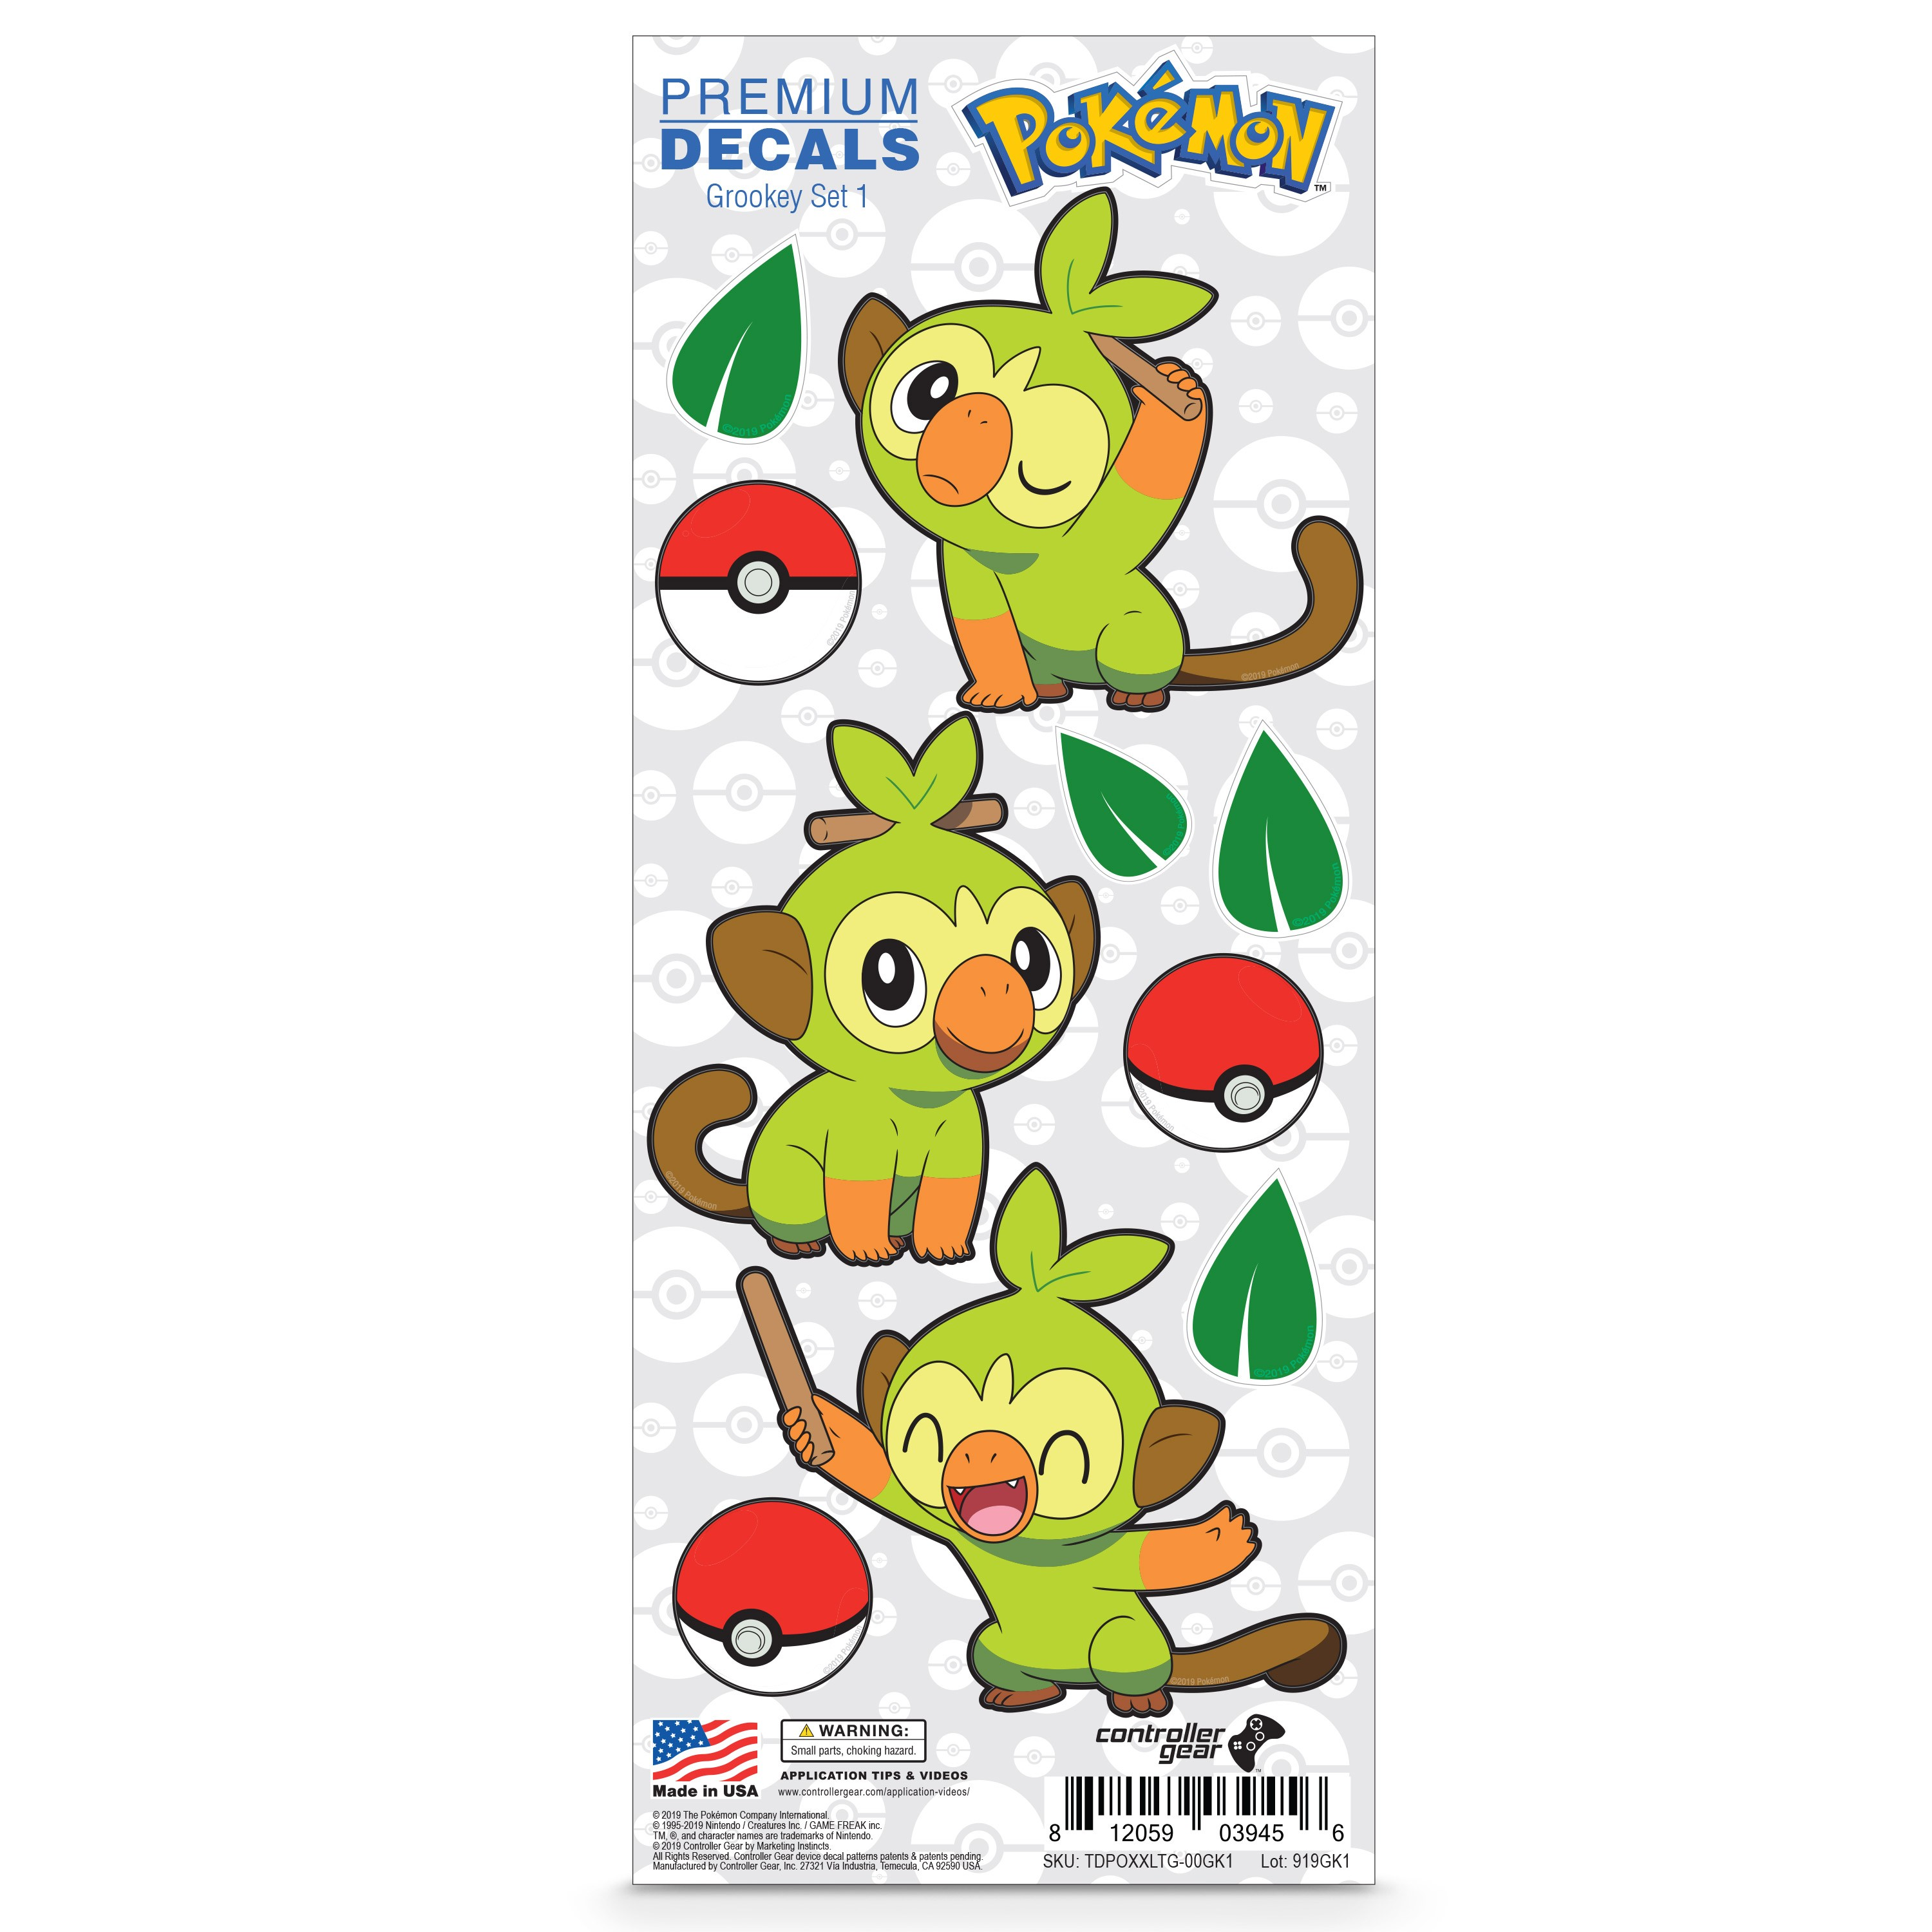 Grookey Images / Grookey is the pokemon whish has one type (grass) from the 8 generation.